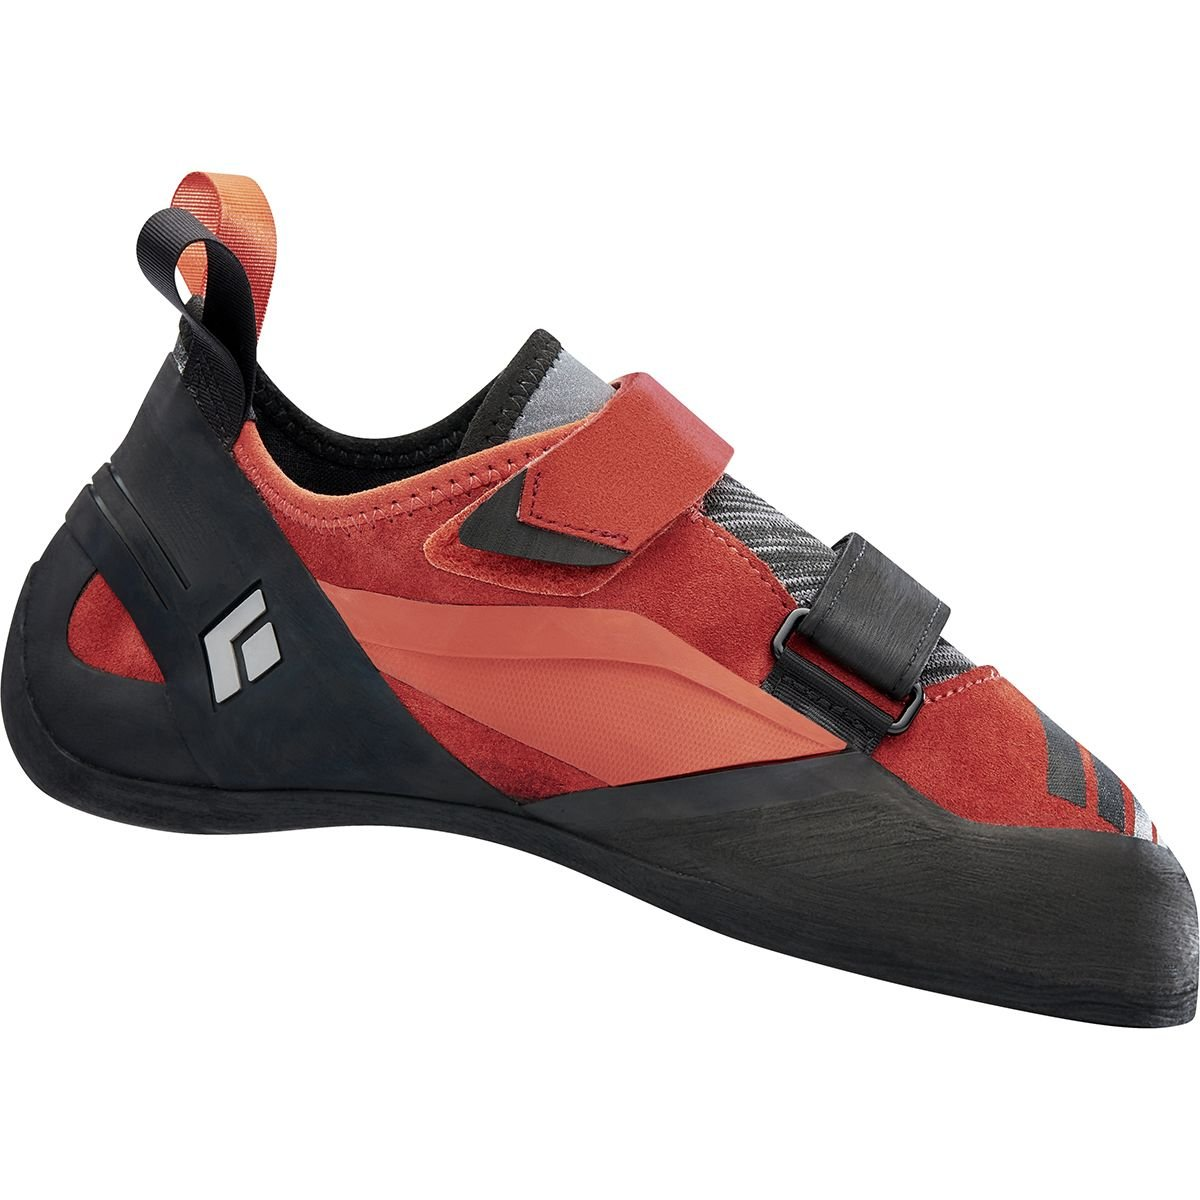 Black Diamond Focus Climbing Shoe - Men's BD570102RUST1051